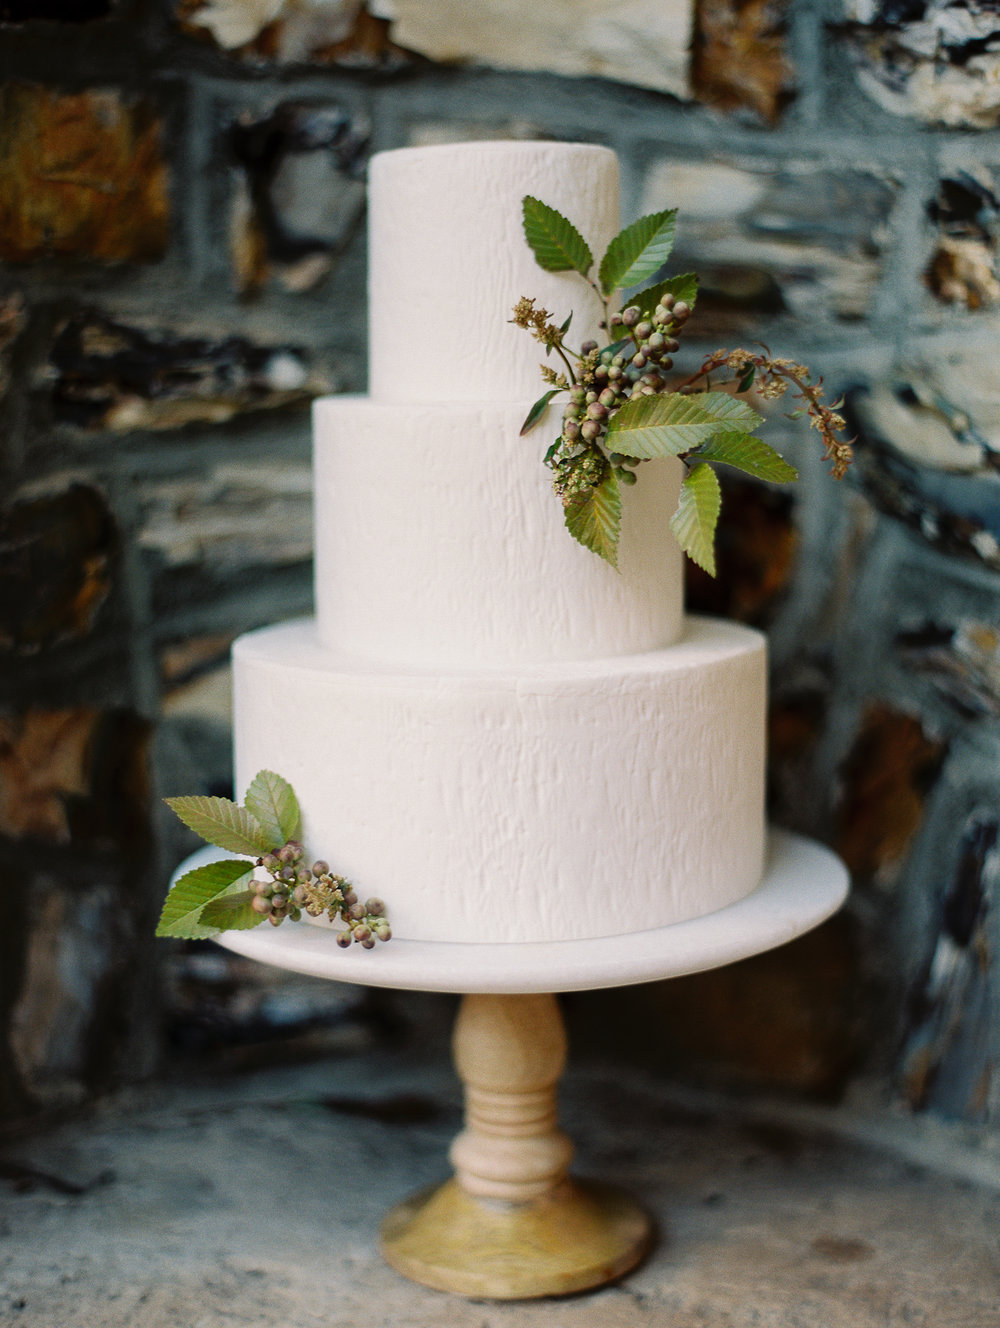 White textured cake with greenery